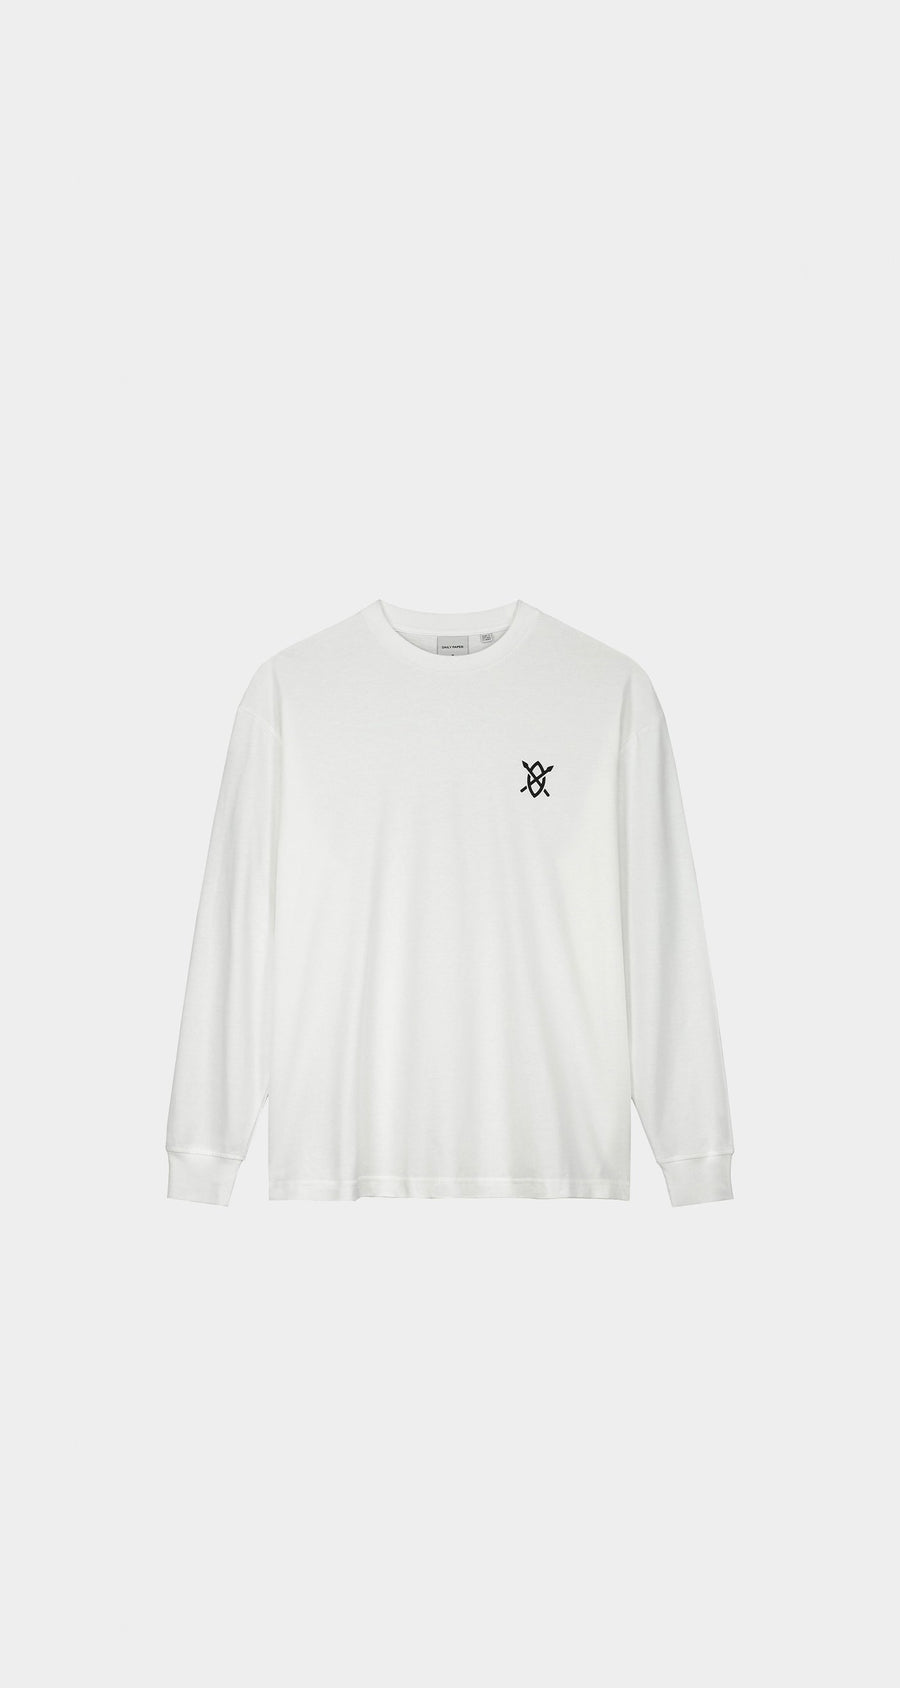 Daily Paper - White New York Flagship Store Longsleeve - Men Rear